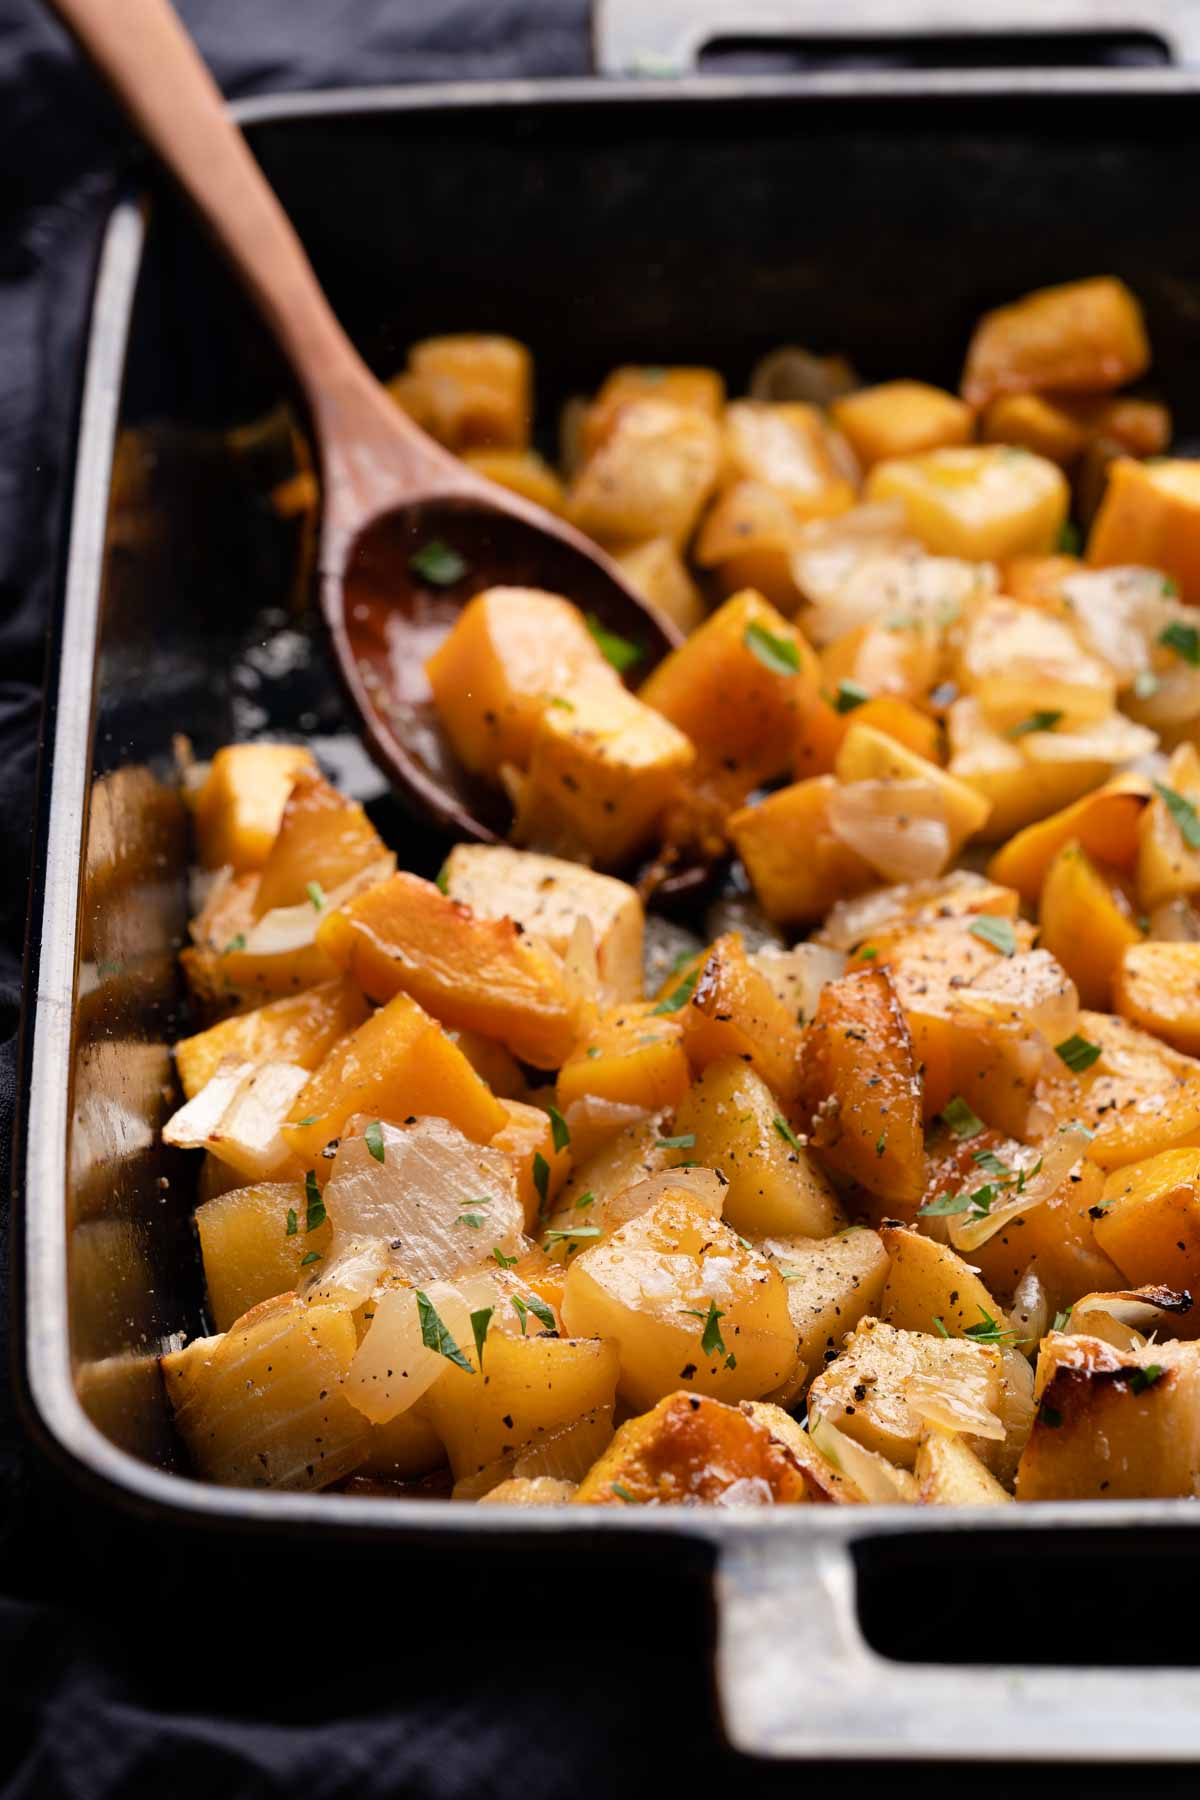 maple glazed squash and apples in casserole dish with wooden spoon